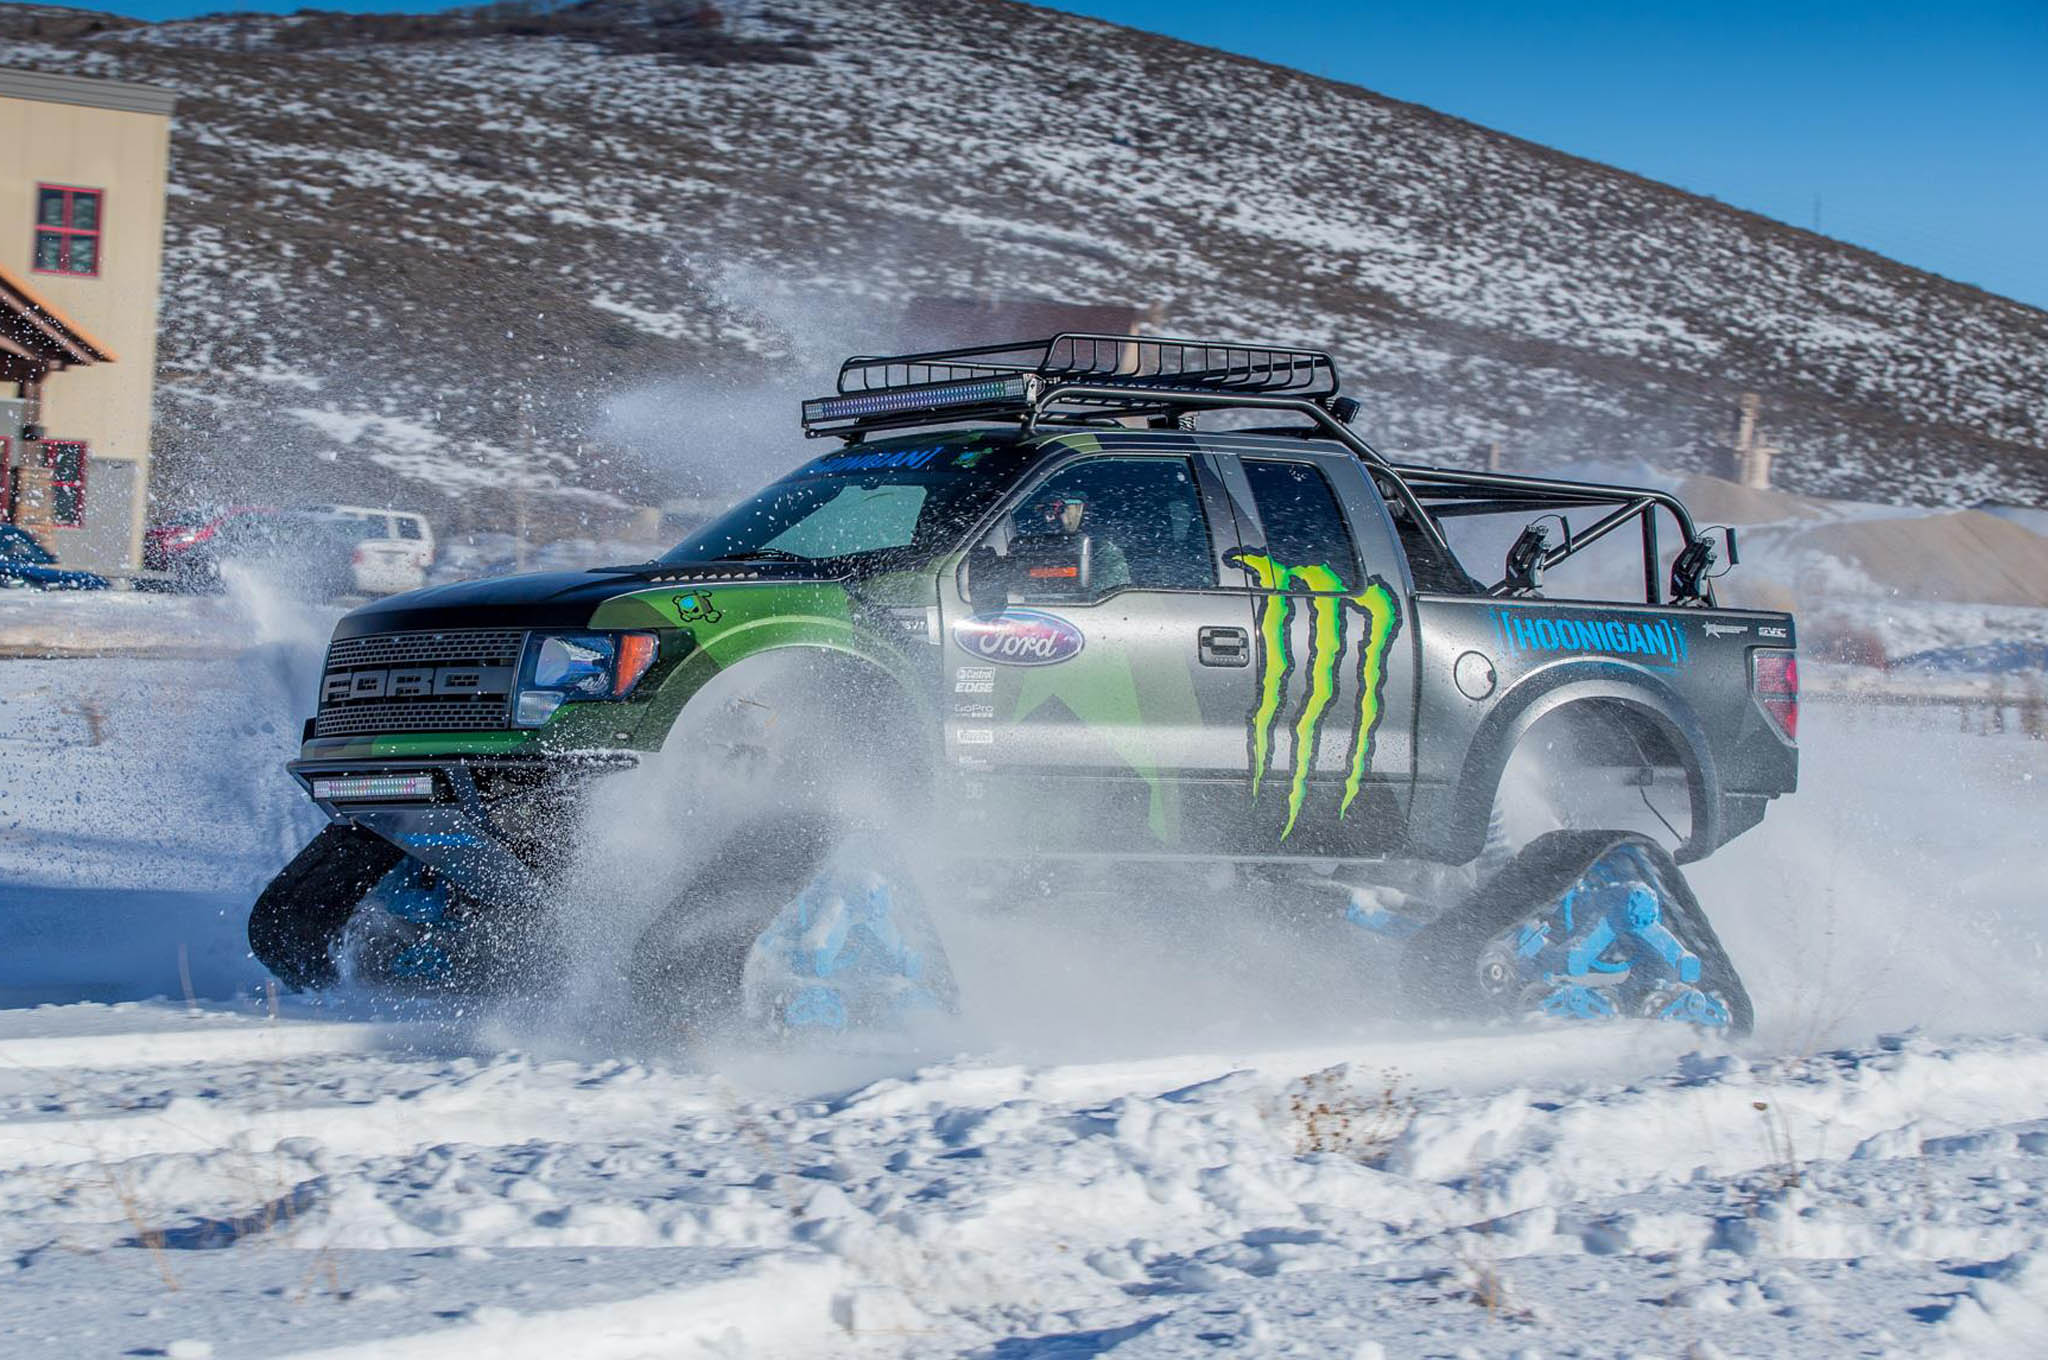 Ford f 150 svt raptor gains snowmobile tracks thanks to ken block this monstrosity voltagebd Choice Image